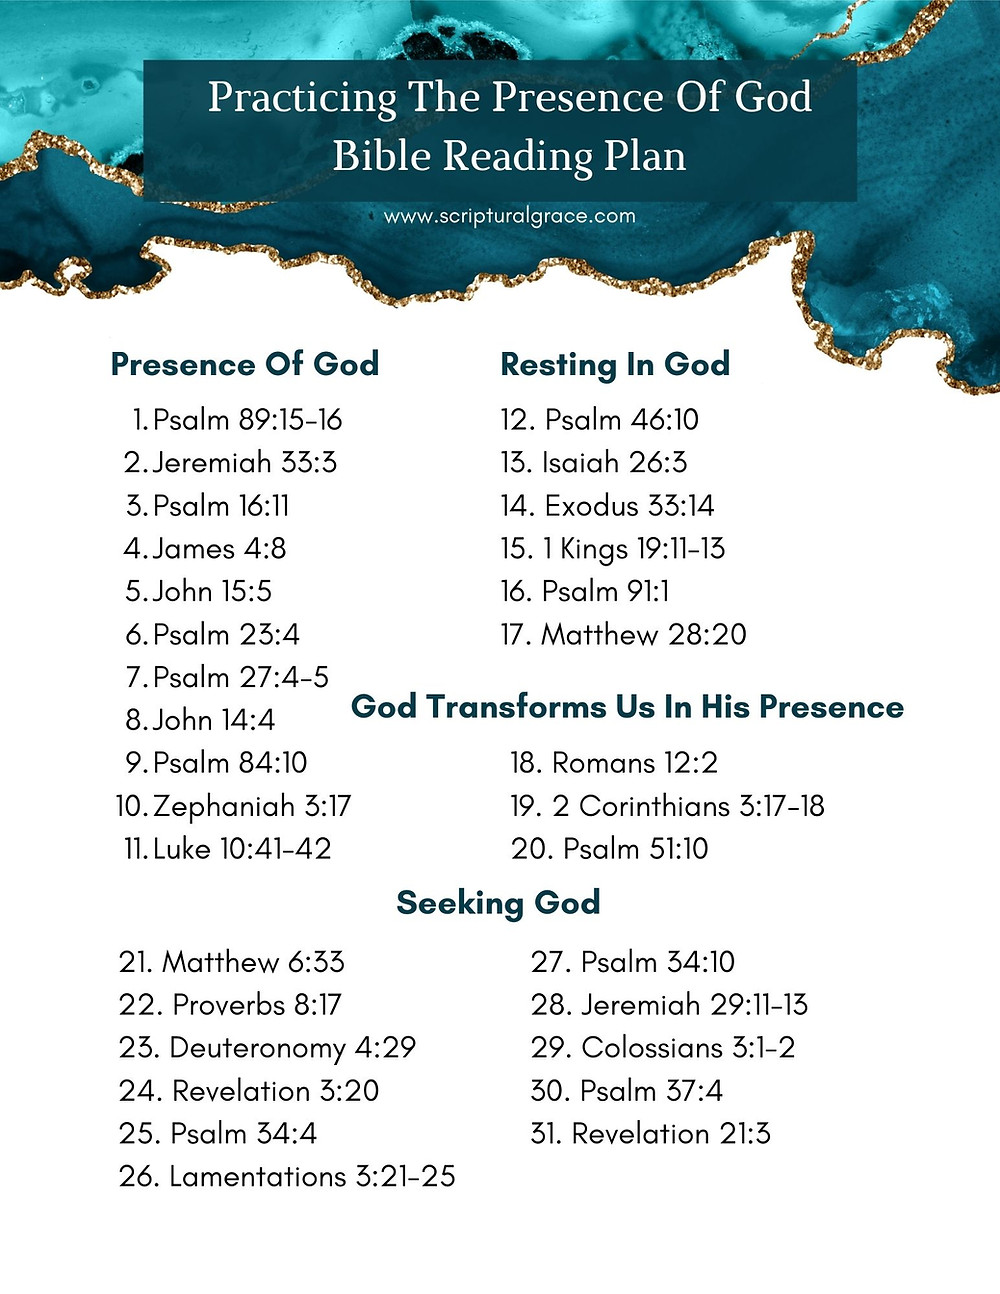 Practicing The Presence Of God 31 Scriptures